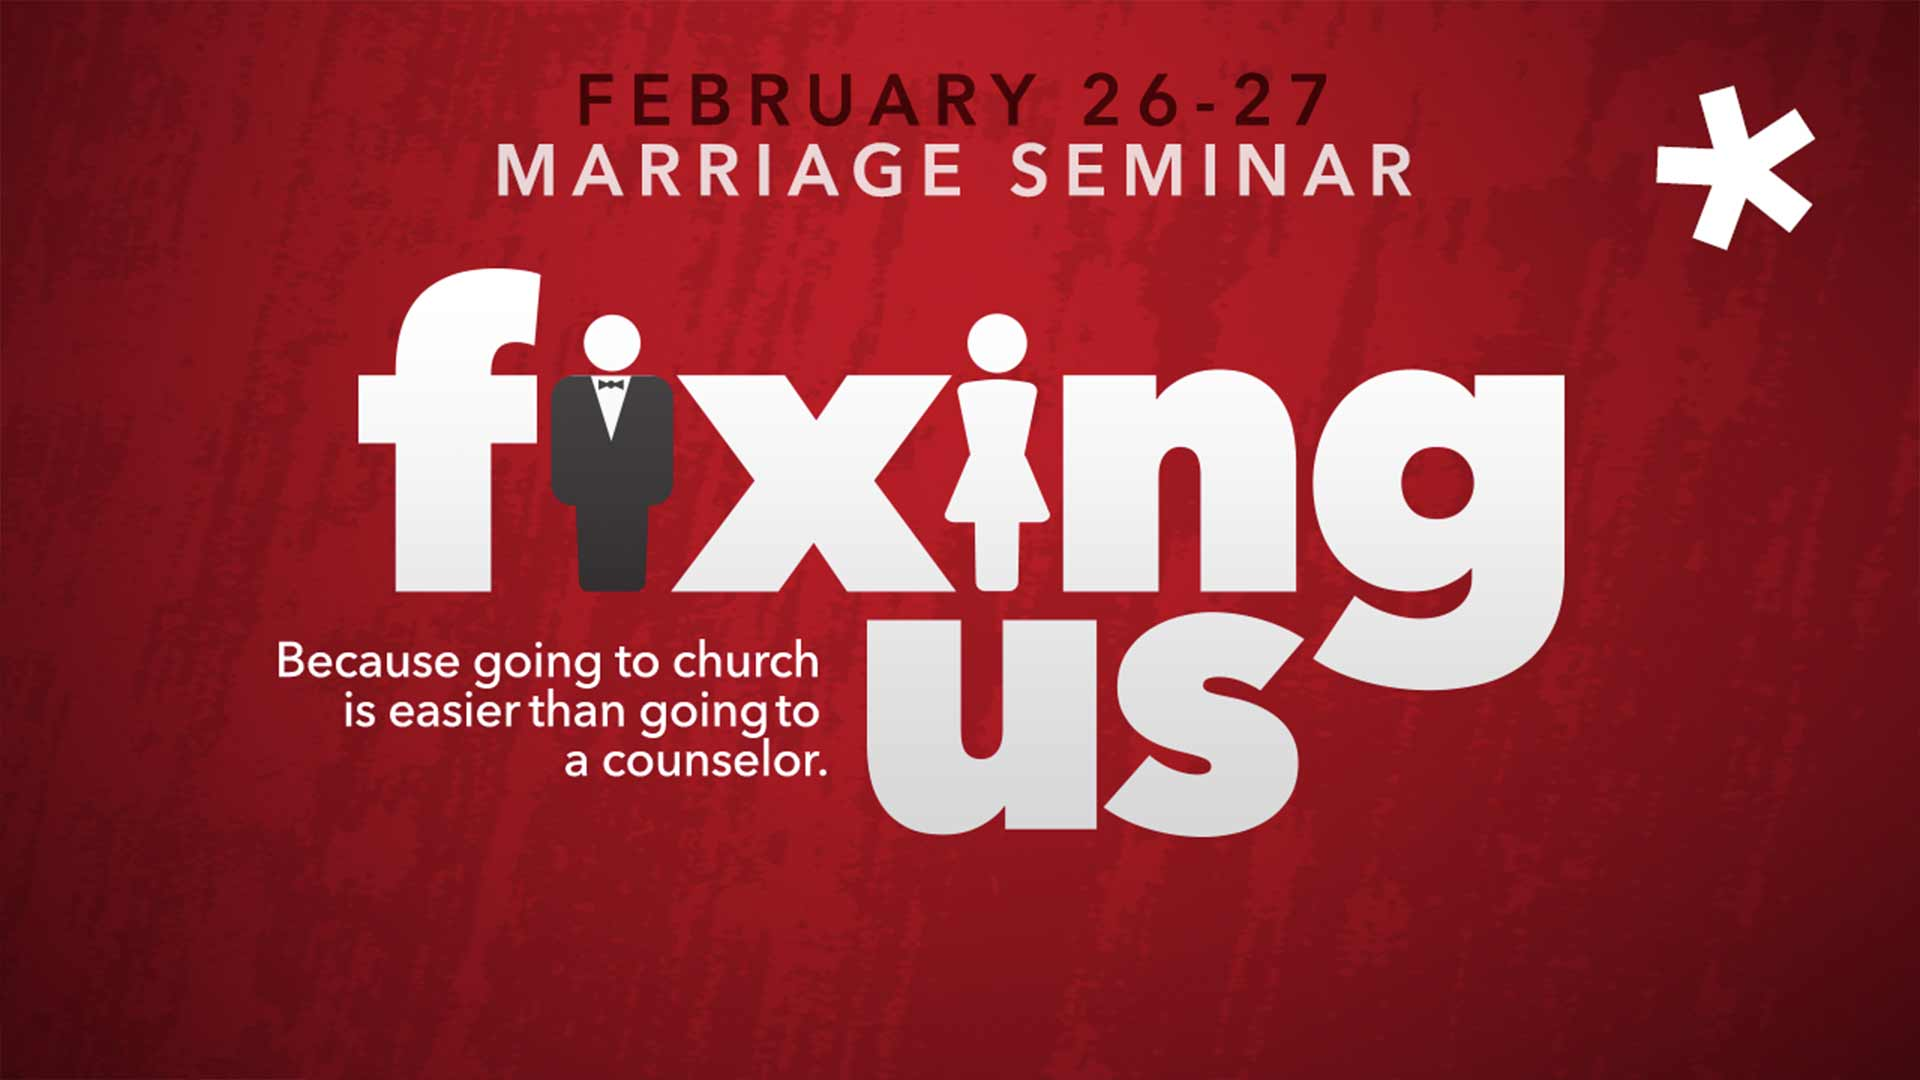 Fixing Us. Because going to church is easier than going to a counselor.